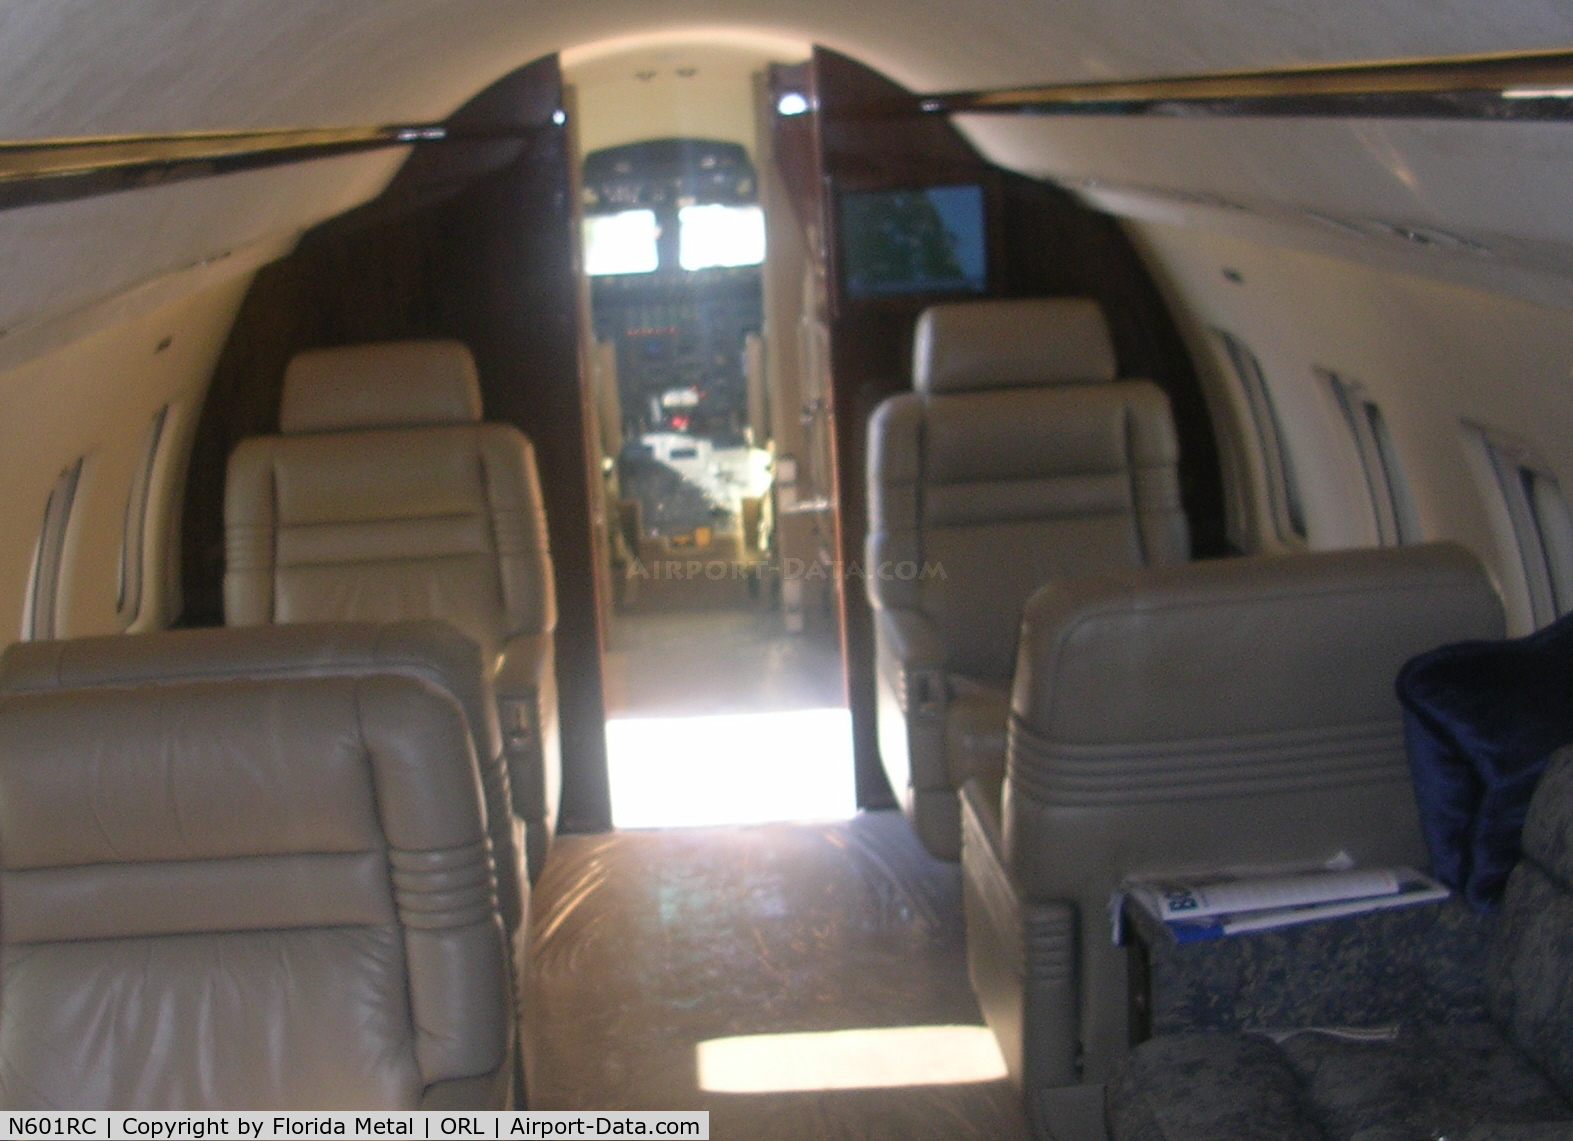 N601RC, 1986 Canadair Challenger 601 (CL-600-2A12) C/N 3055, Challenger